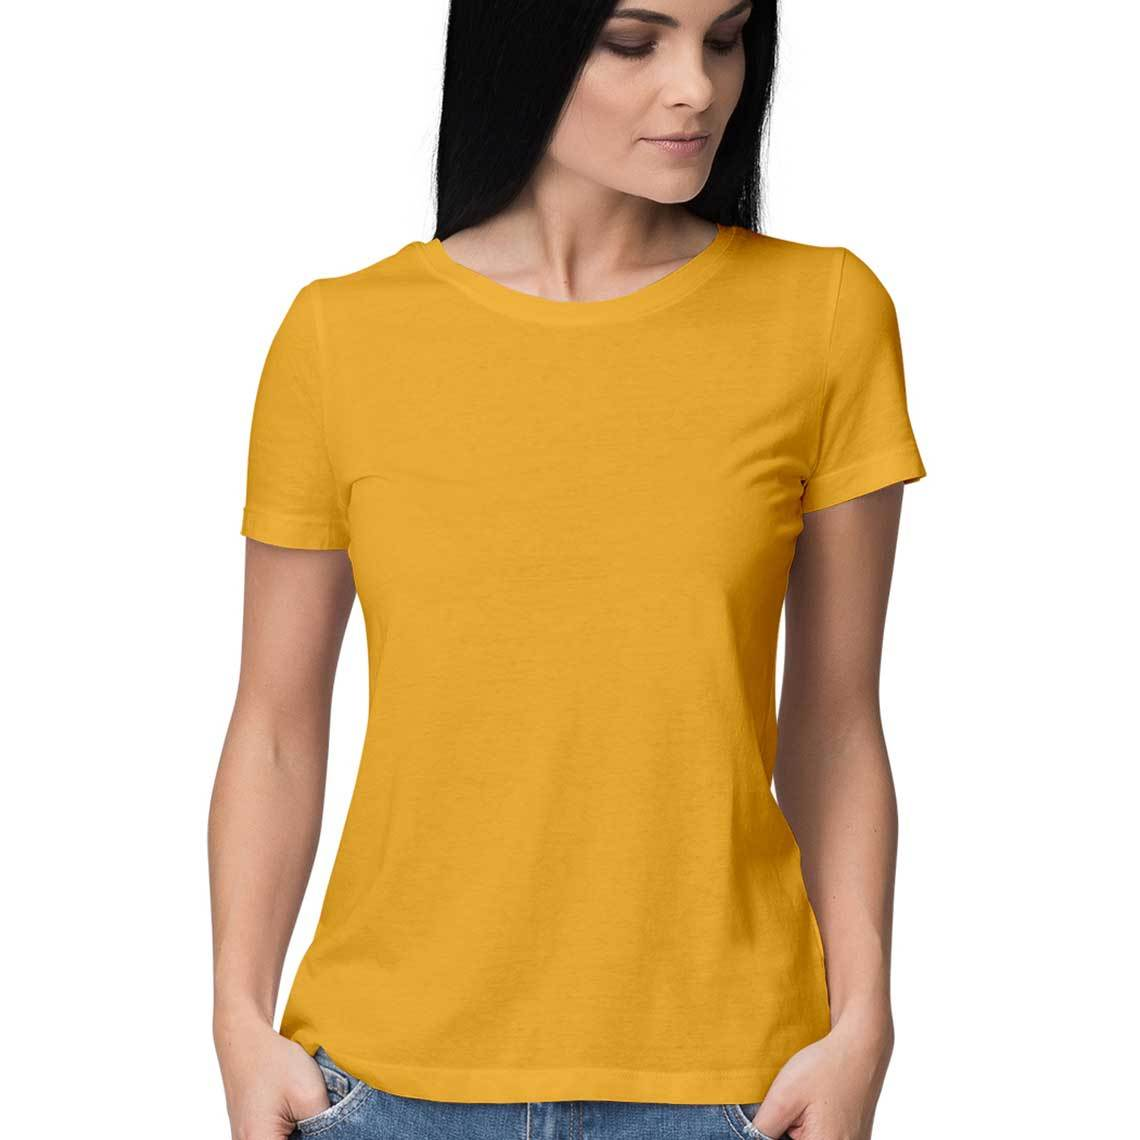 New Simple Plain T-shirts for Women